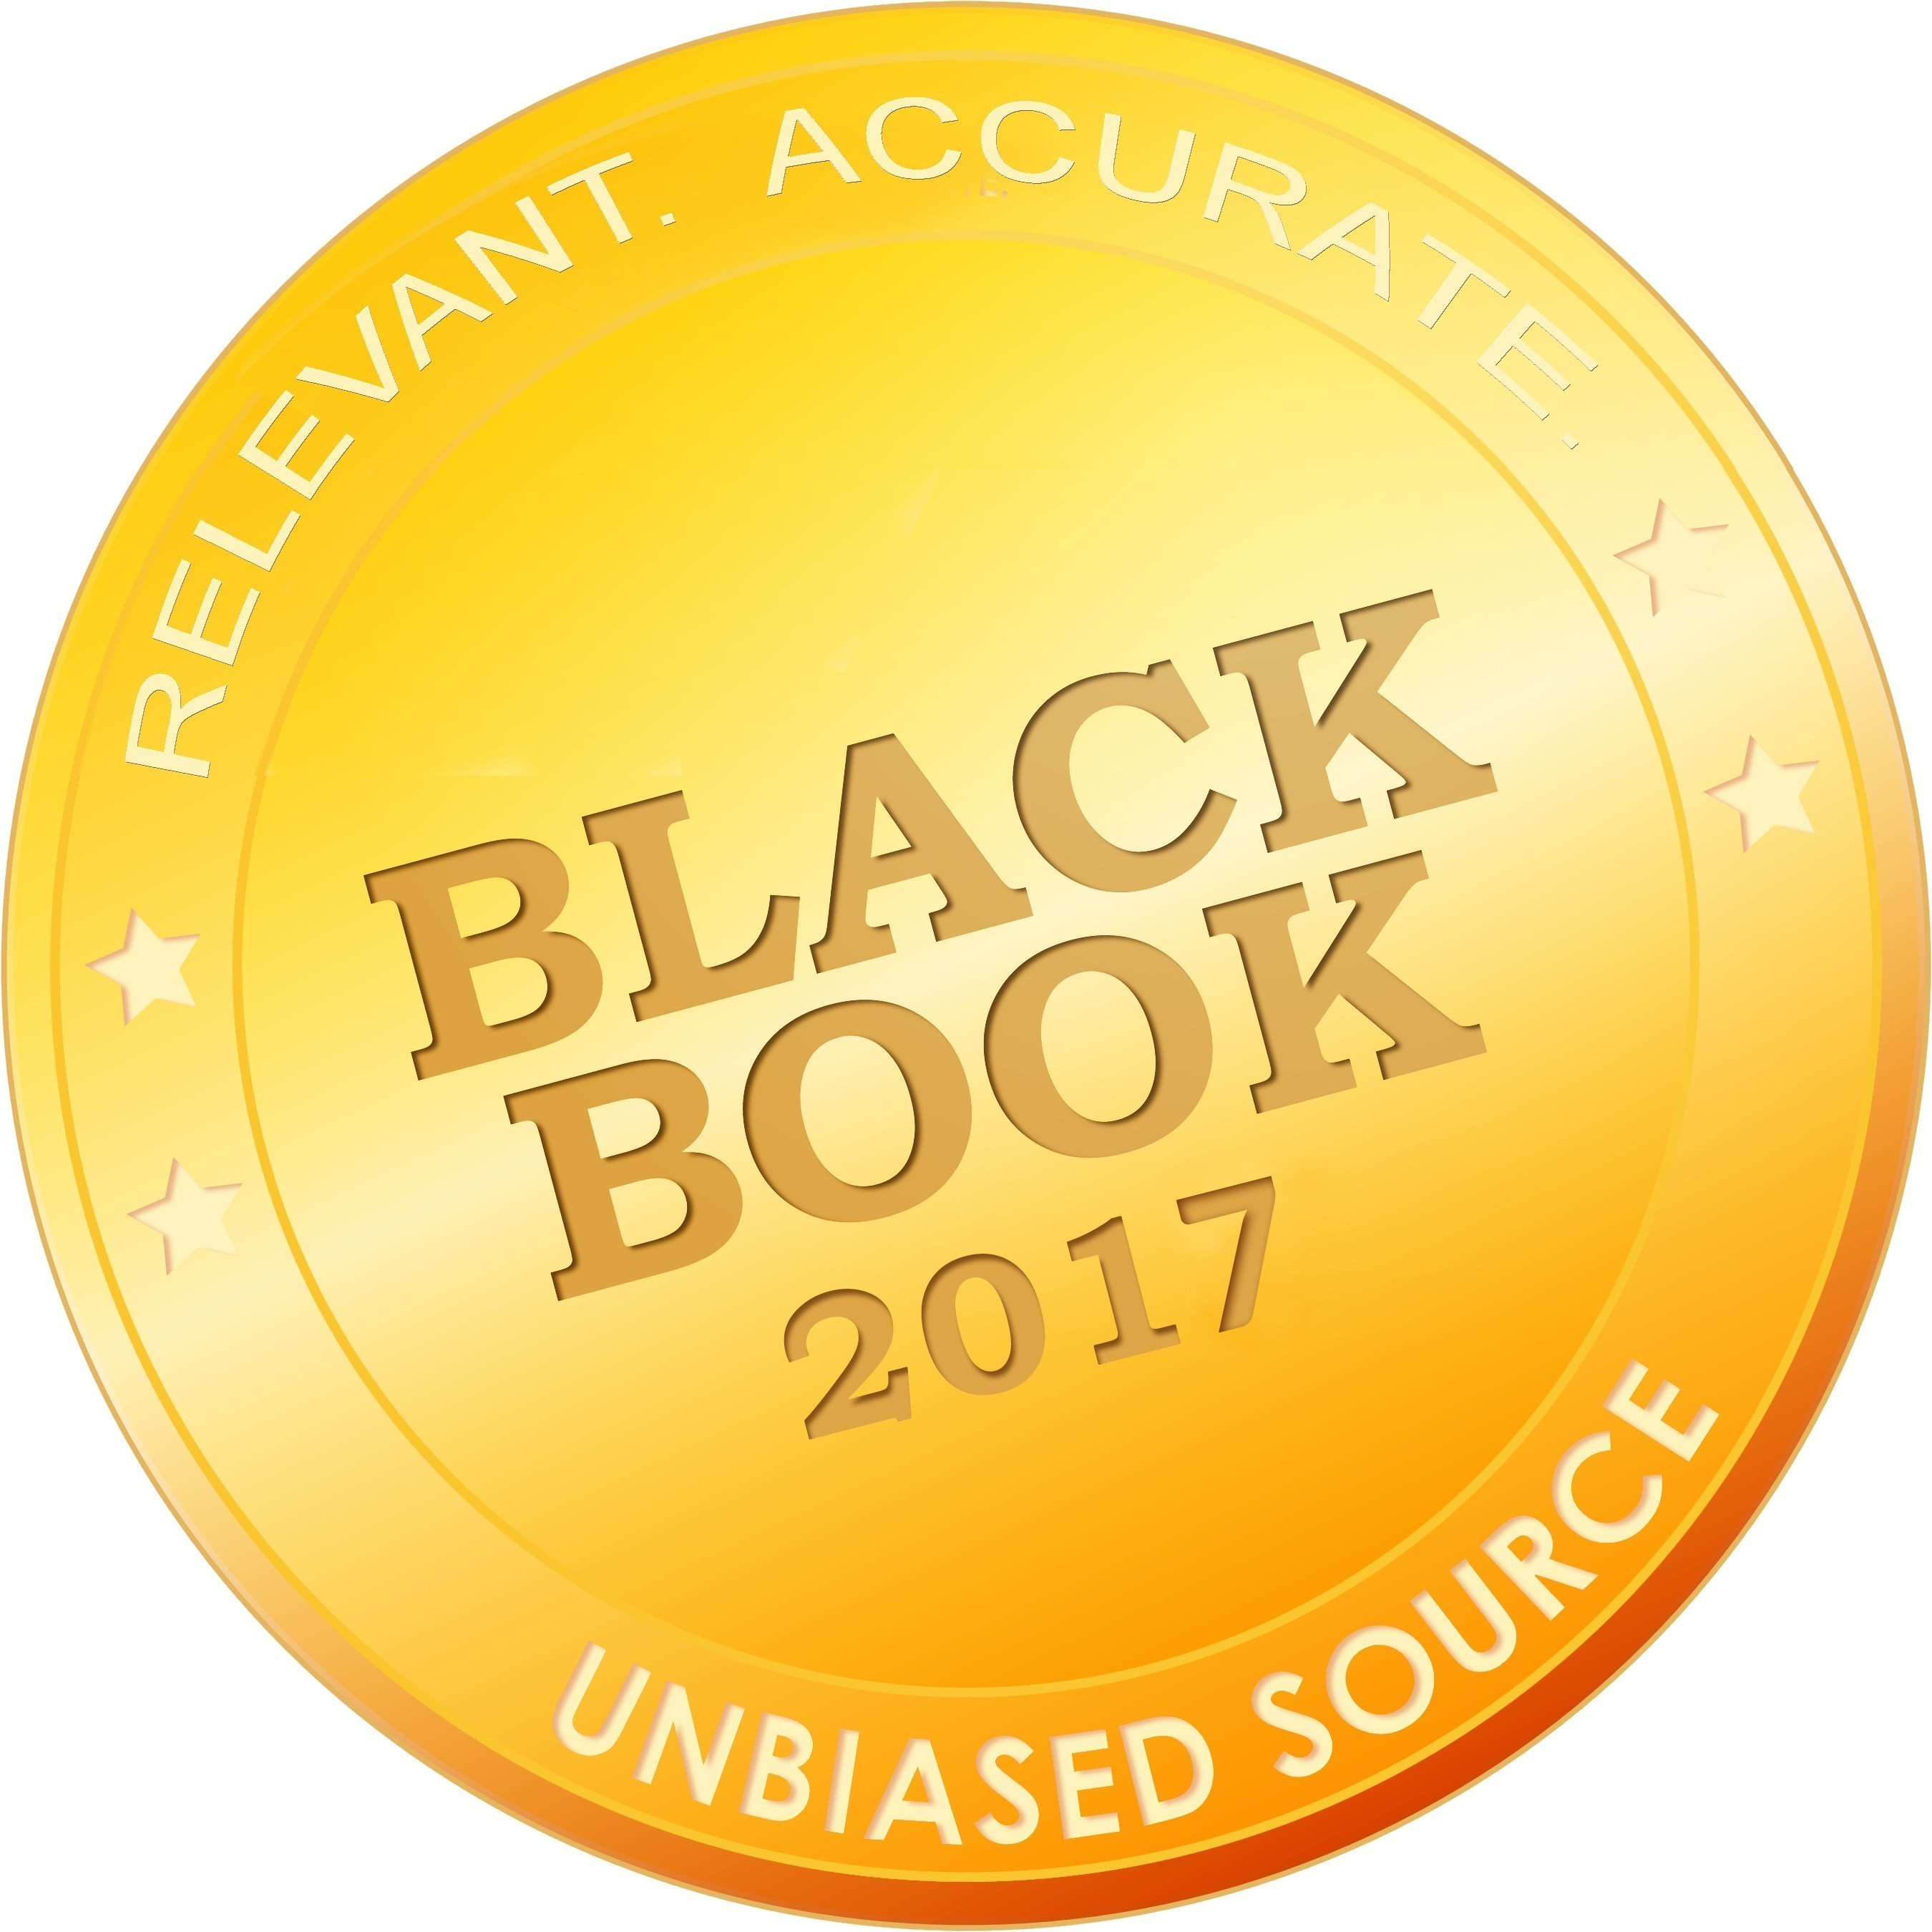 Black Book™ Announces Top Ranked End-to-End Crisis